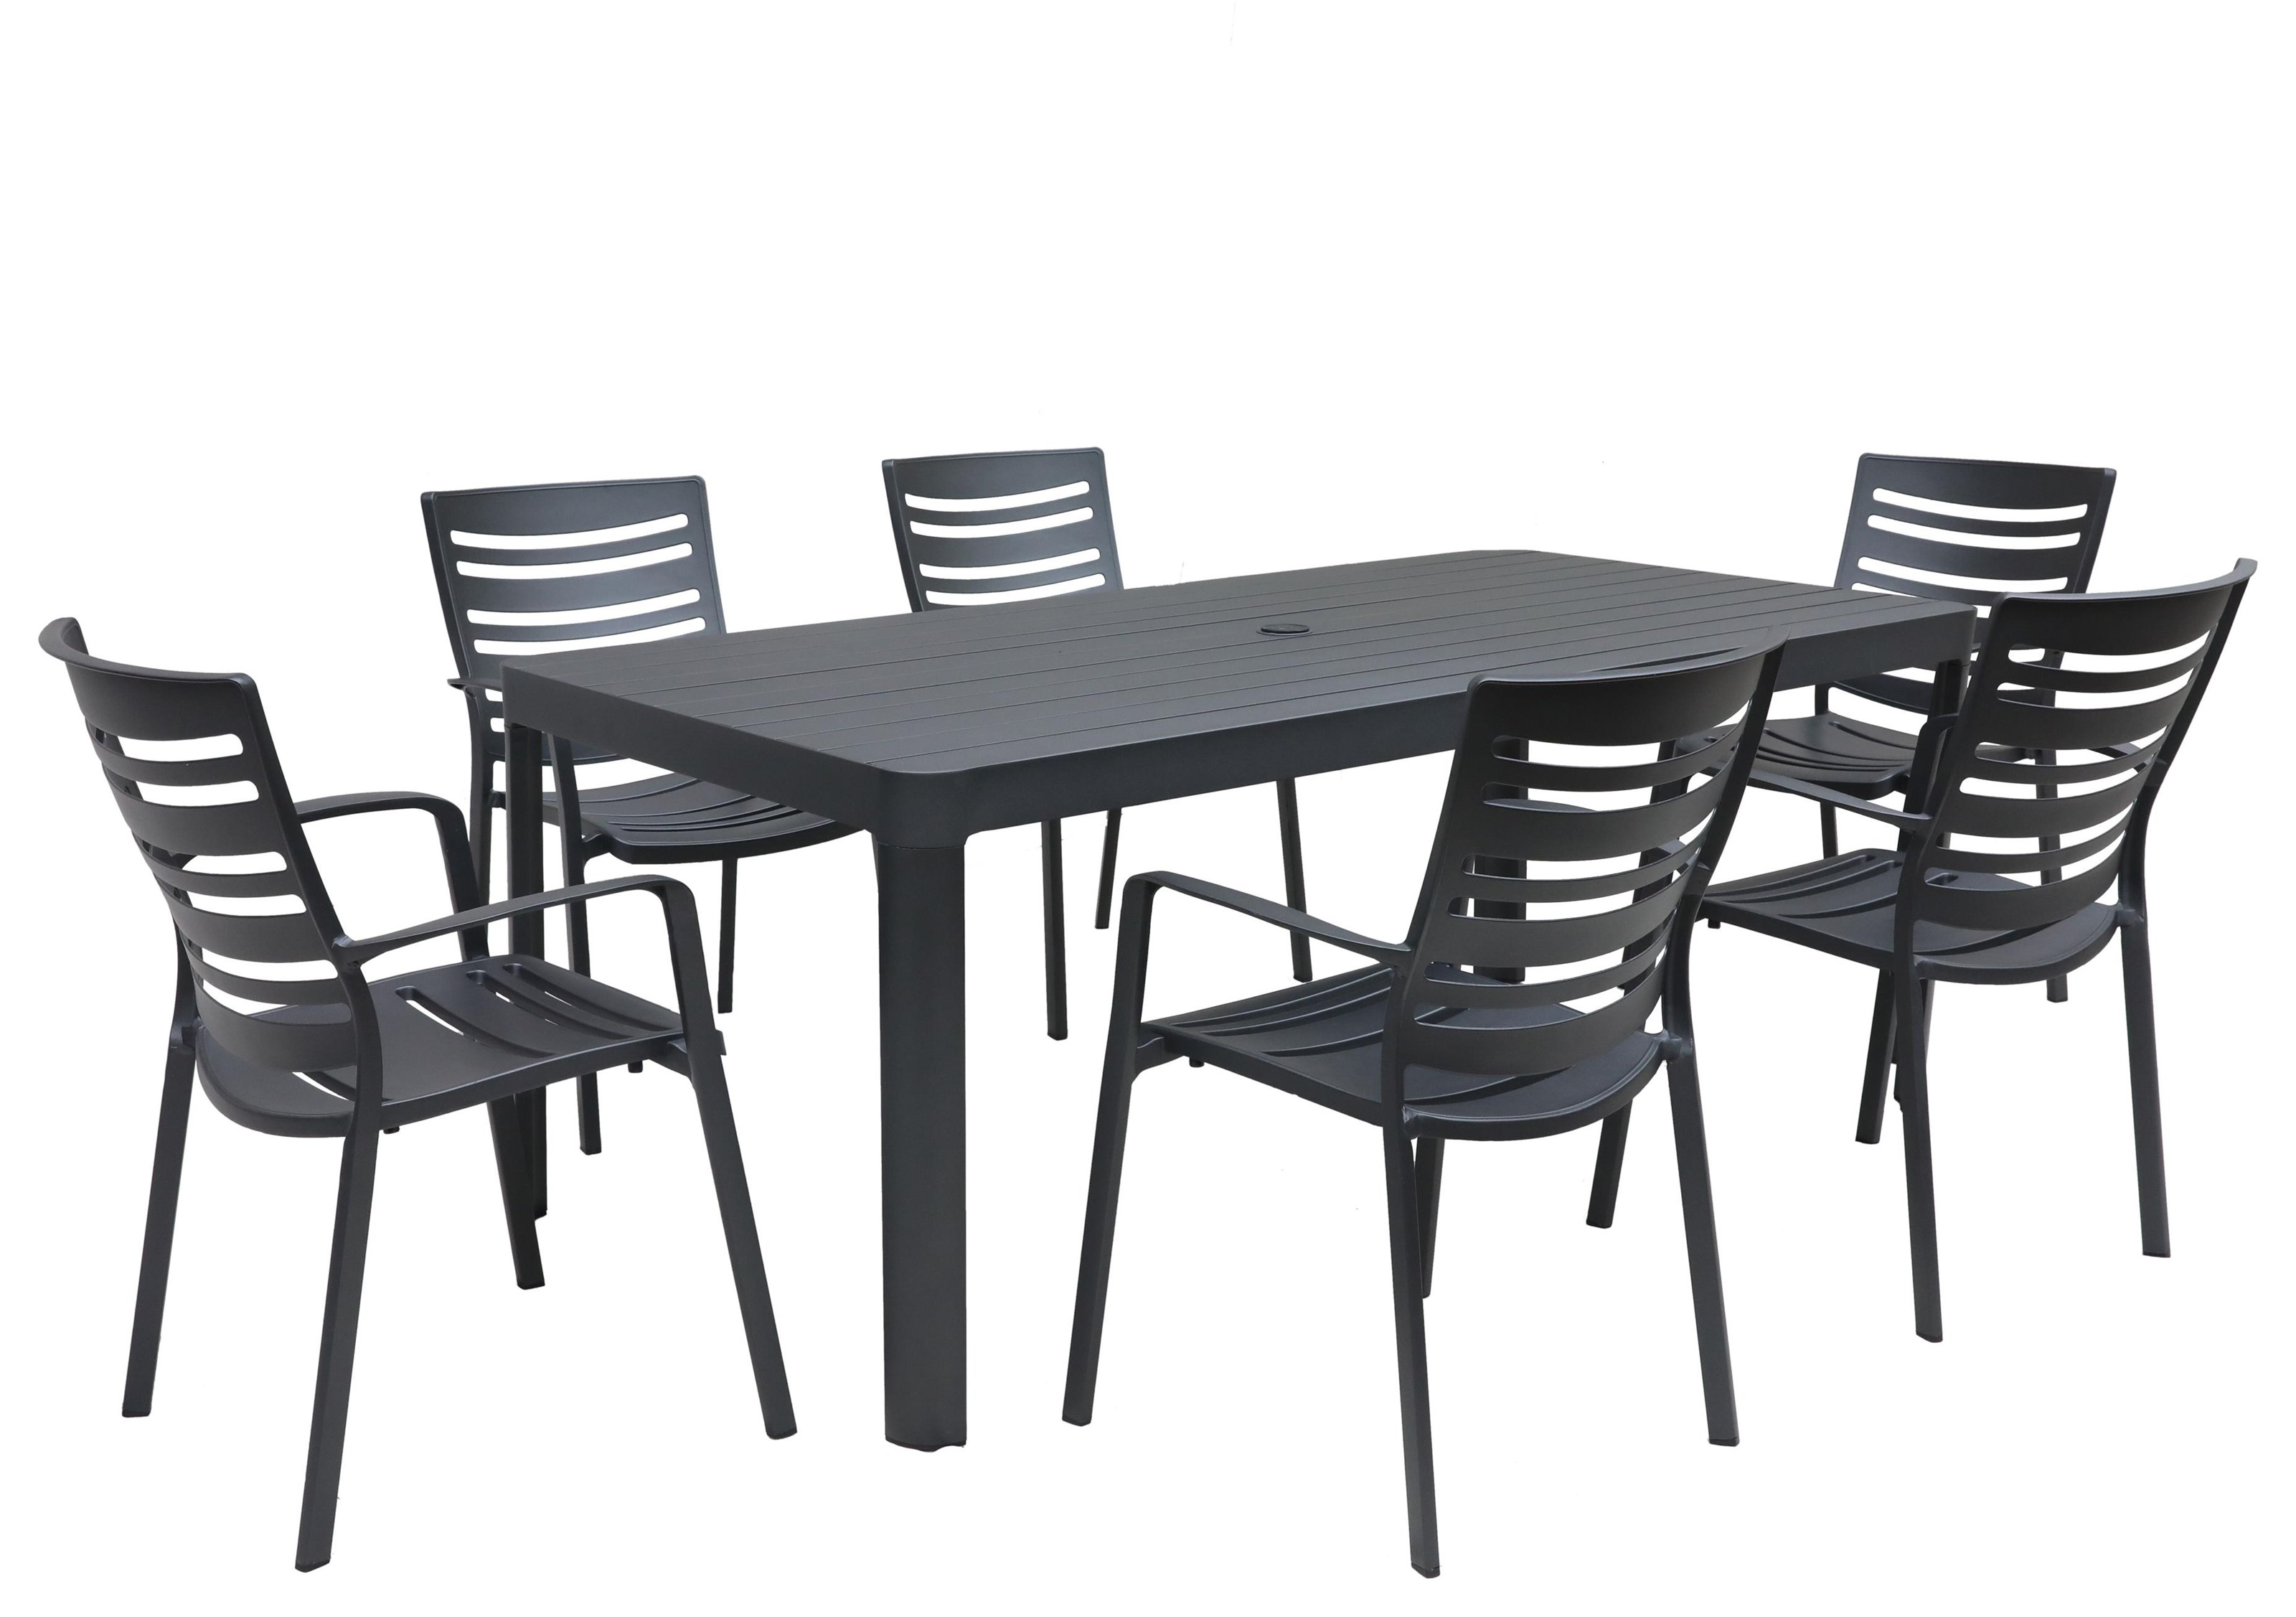 IKAST 7 Piece Outdoor Dining Set by GatherCraft at Darvin Furniture